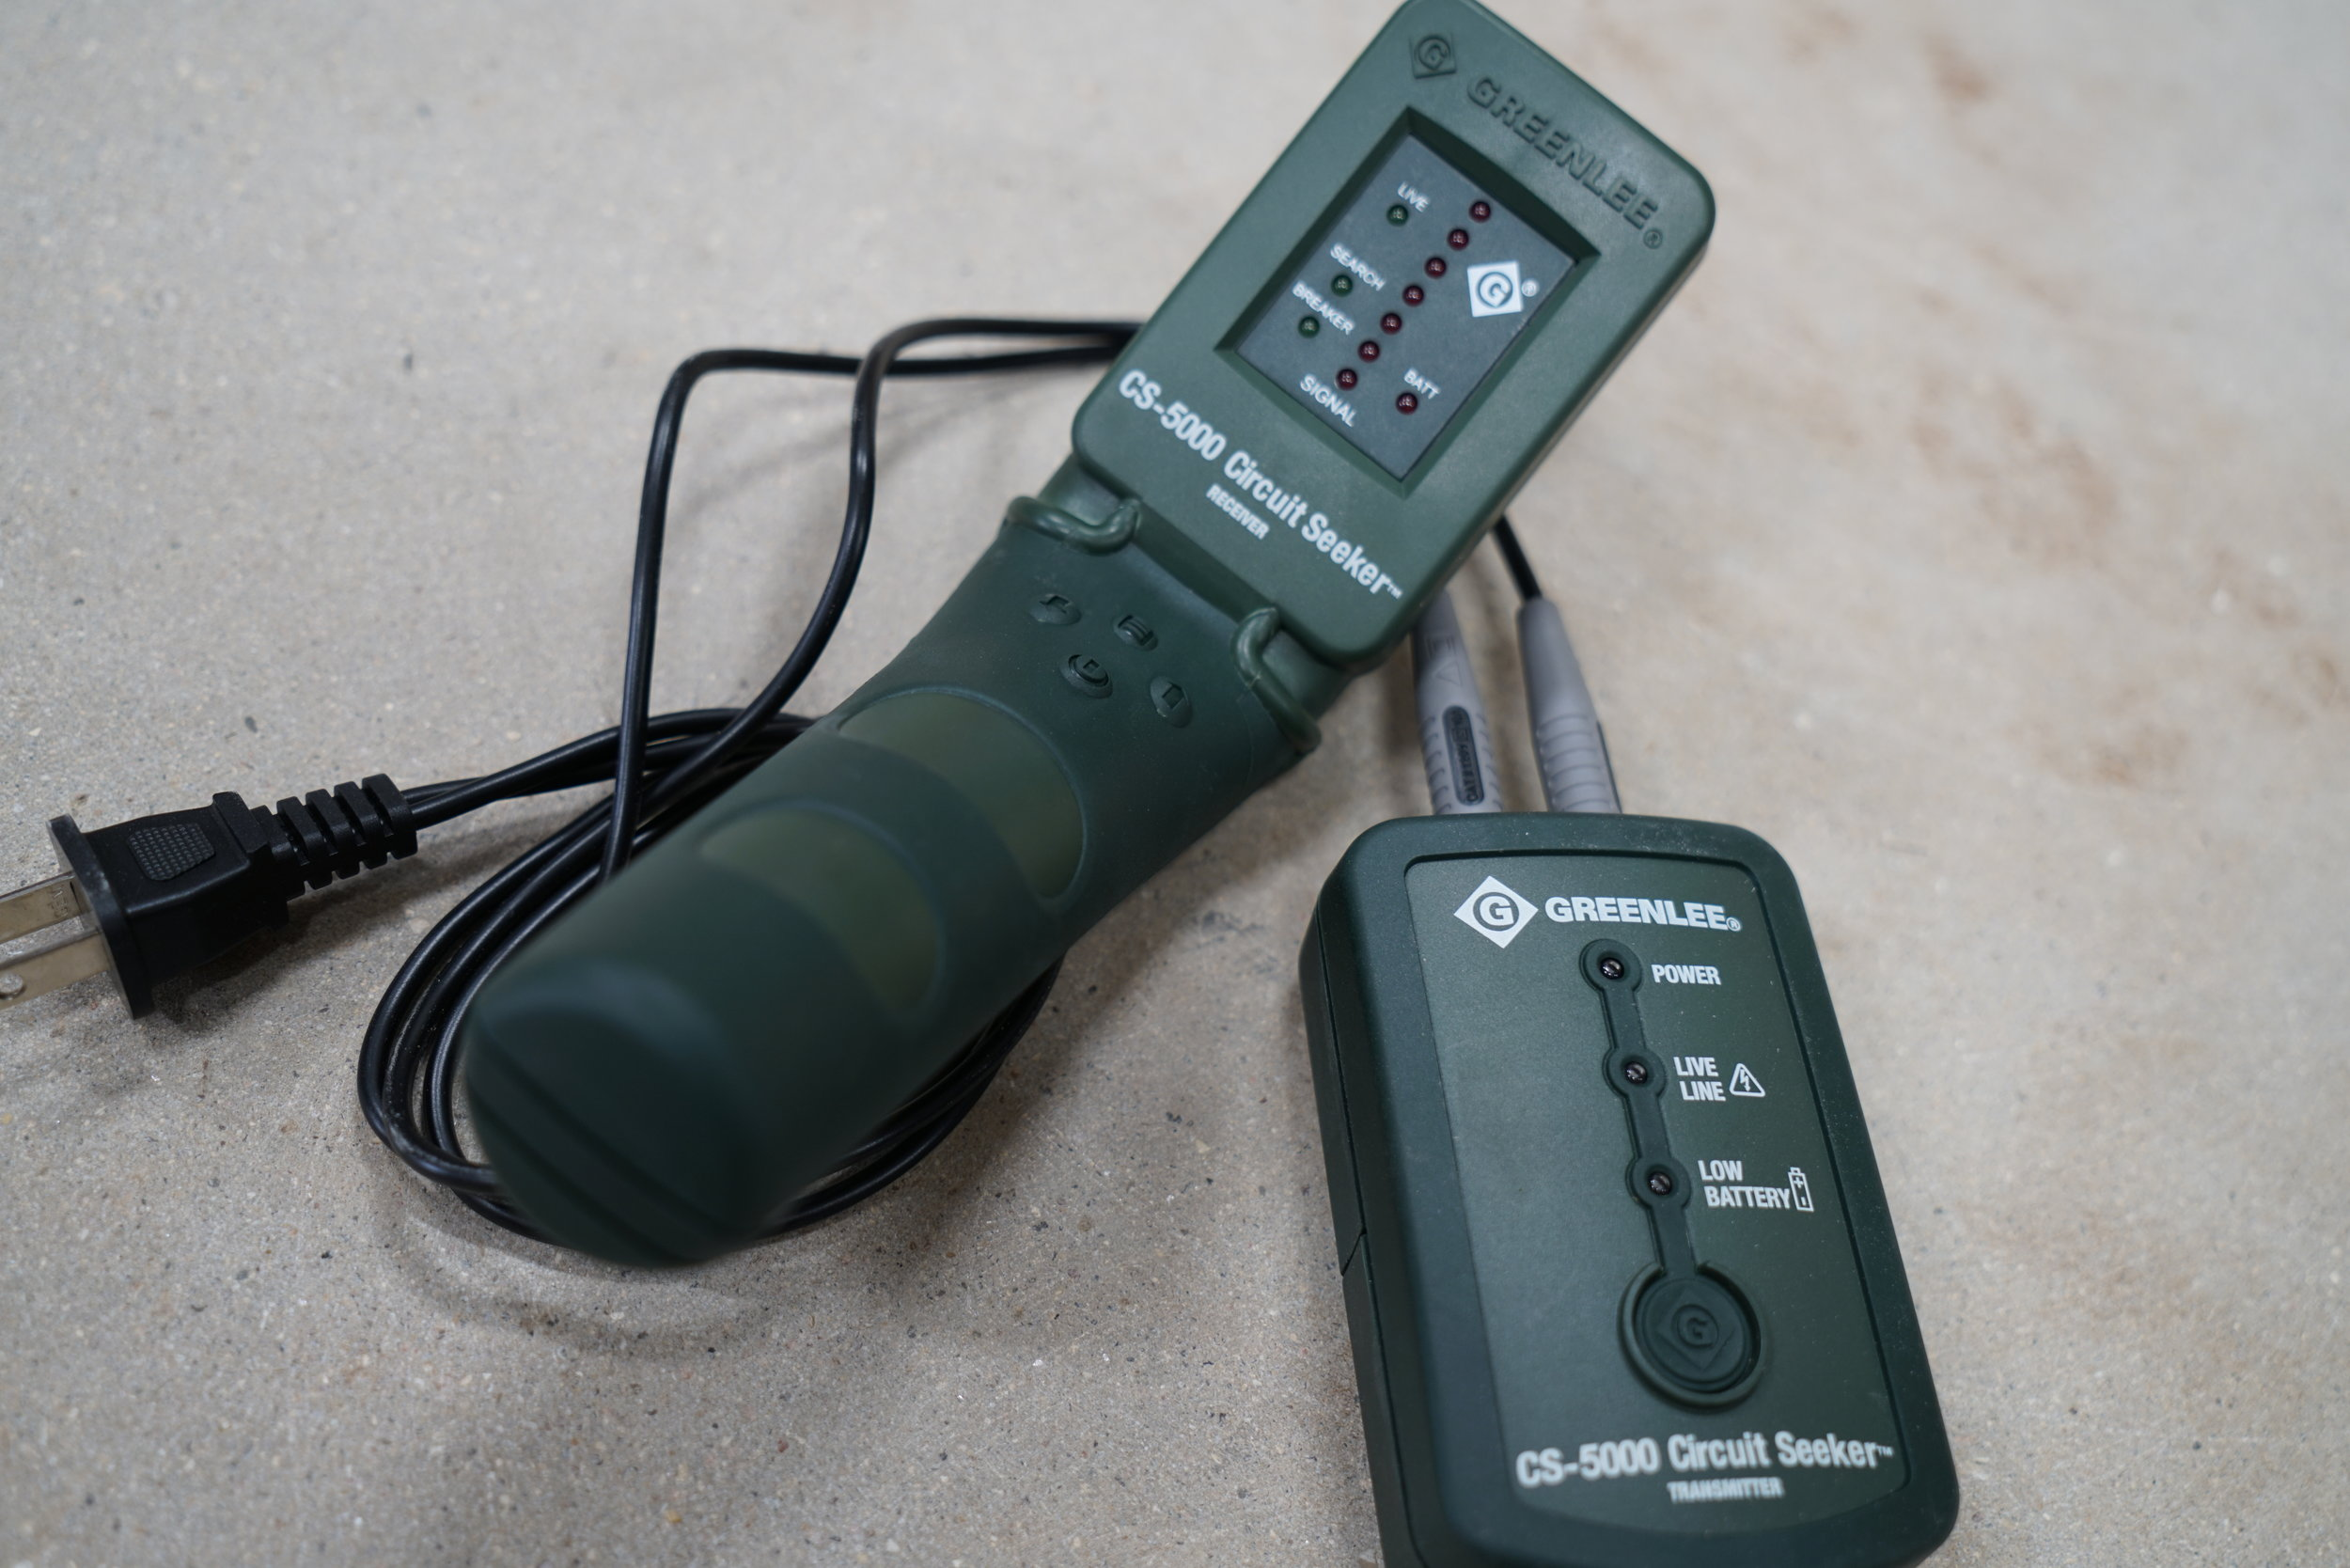 greenlee-cs5000-circuit-seeker-tracer